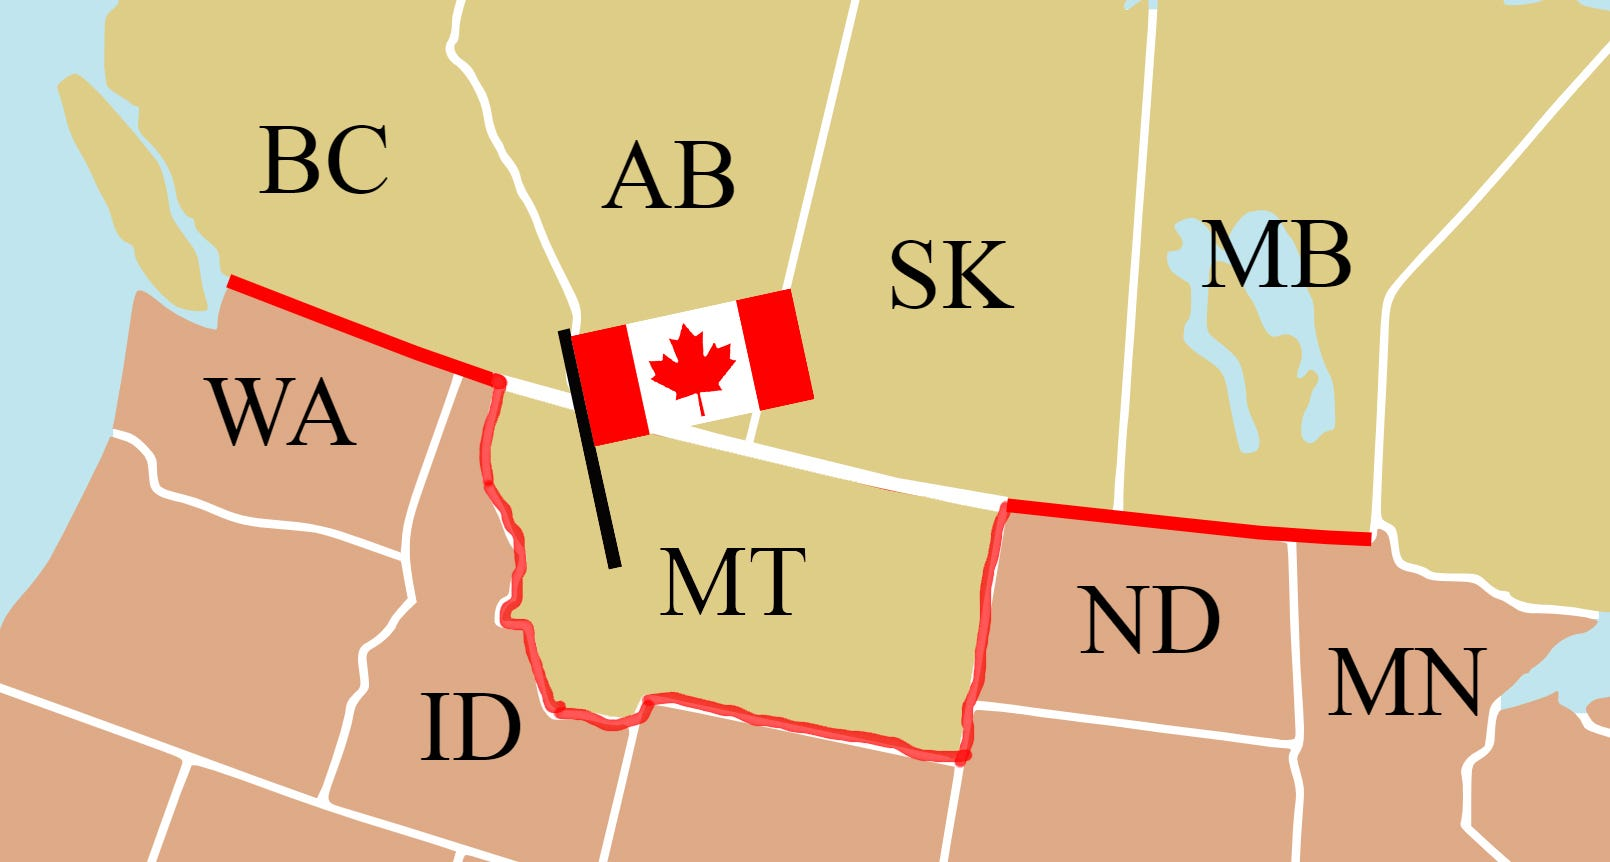 Map Of Northern Montana And Canada US to sell Montana to Canada for $1T to pay off debt, petition advises